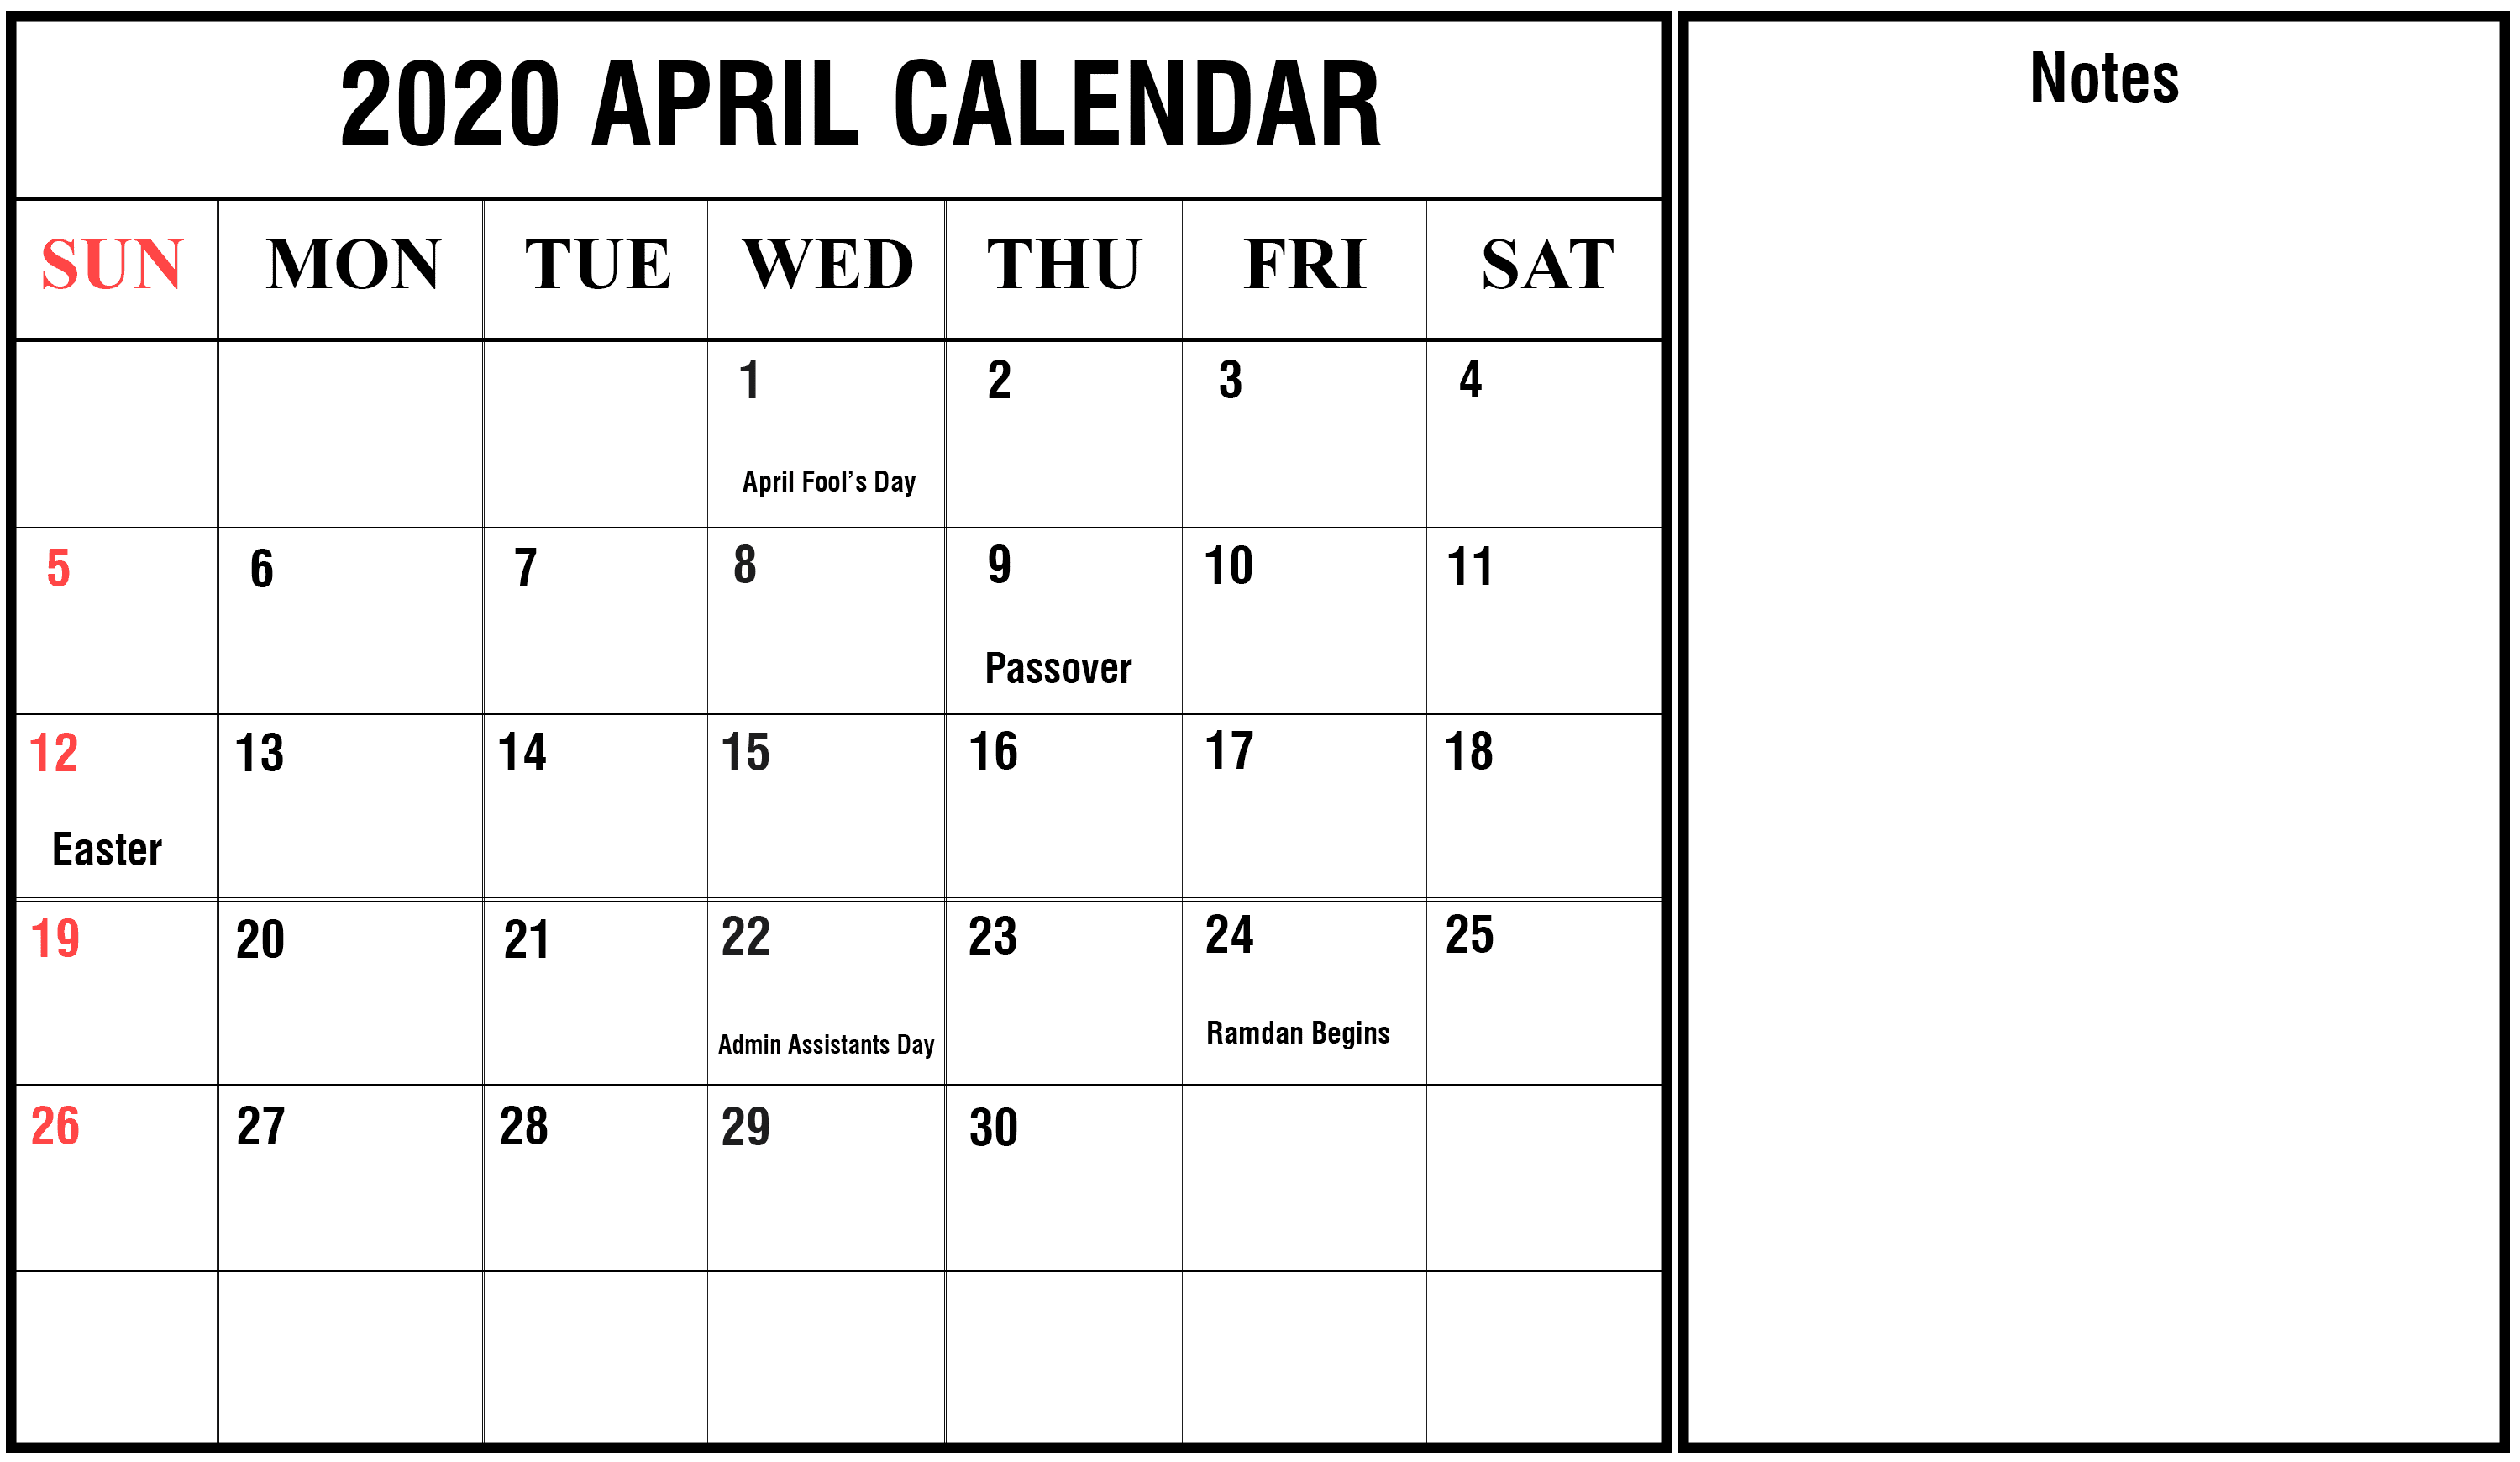 April 2020 Calendar Holidays Template